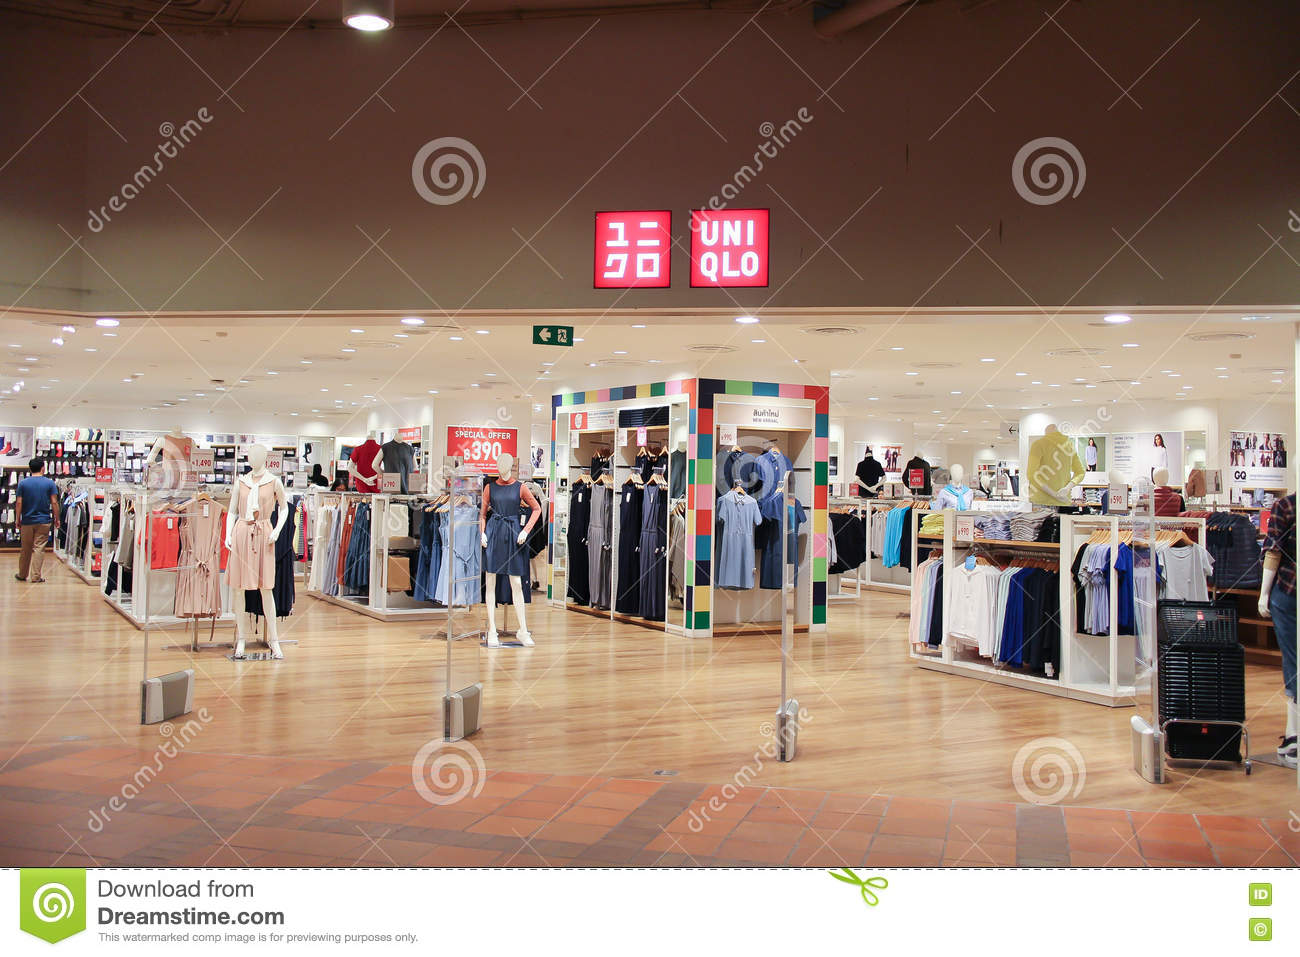 uniqlo co ltd is a japanese casual wear designer manufacturer and retailer photo at central airport plaza chiang mai